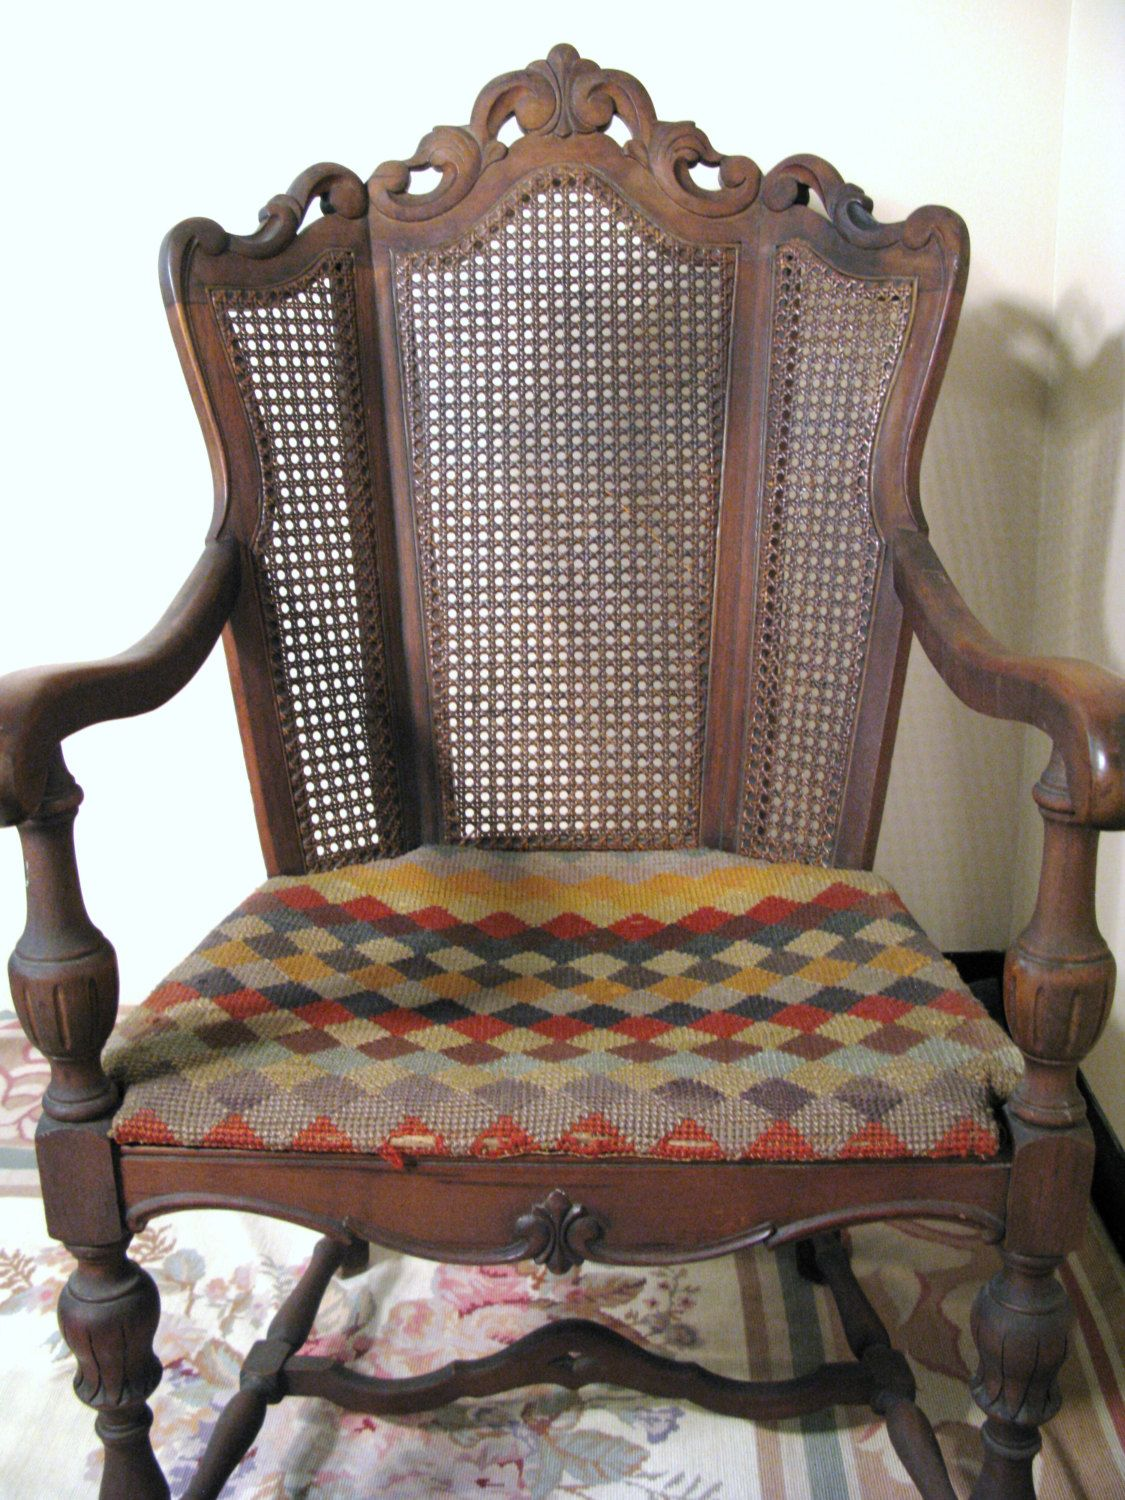 INDIANAPOLIS FURNITURE COMPANY ~ Antique Wooden Wicker Caned Chair ~  Beveled Back Rest ~ Maple Wood - INDIANAPOLIS FURNITURE COMPANY ~ Antique Wooden Wicker Caned Chair